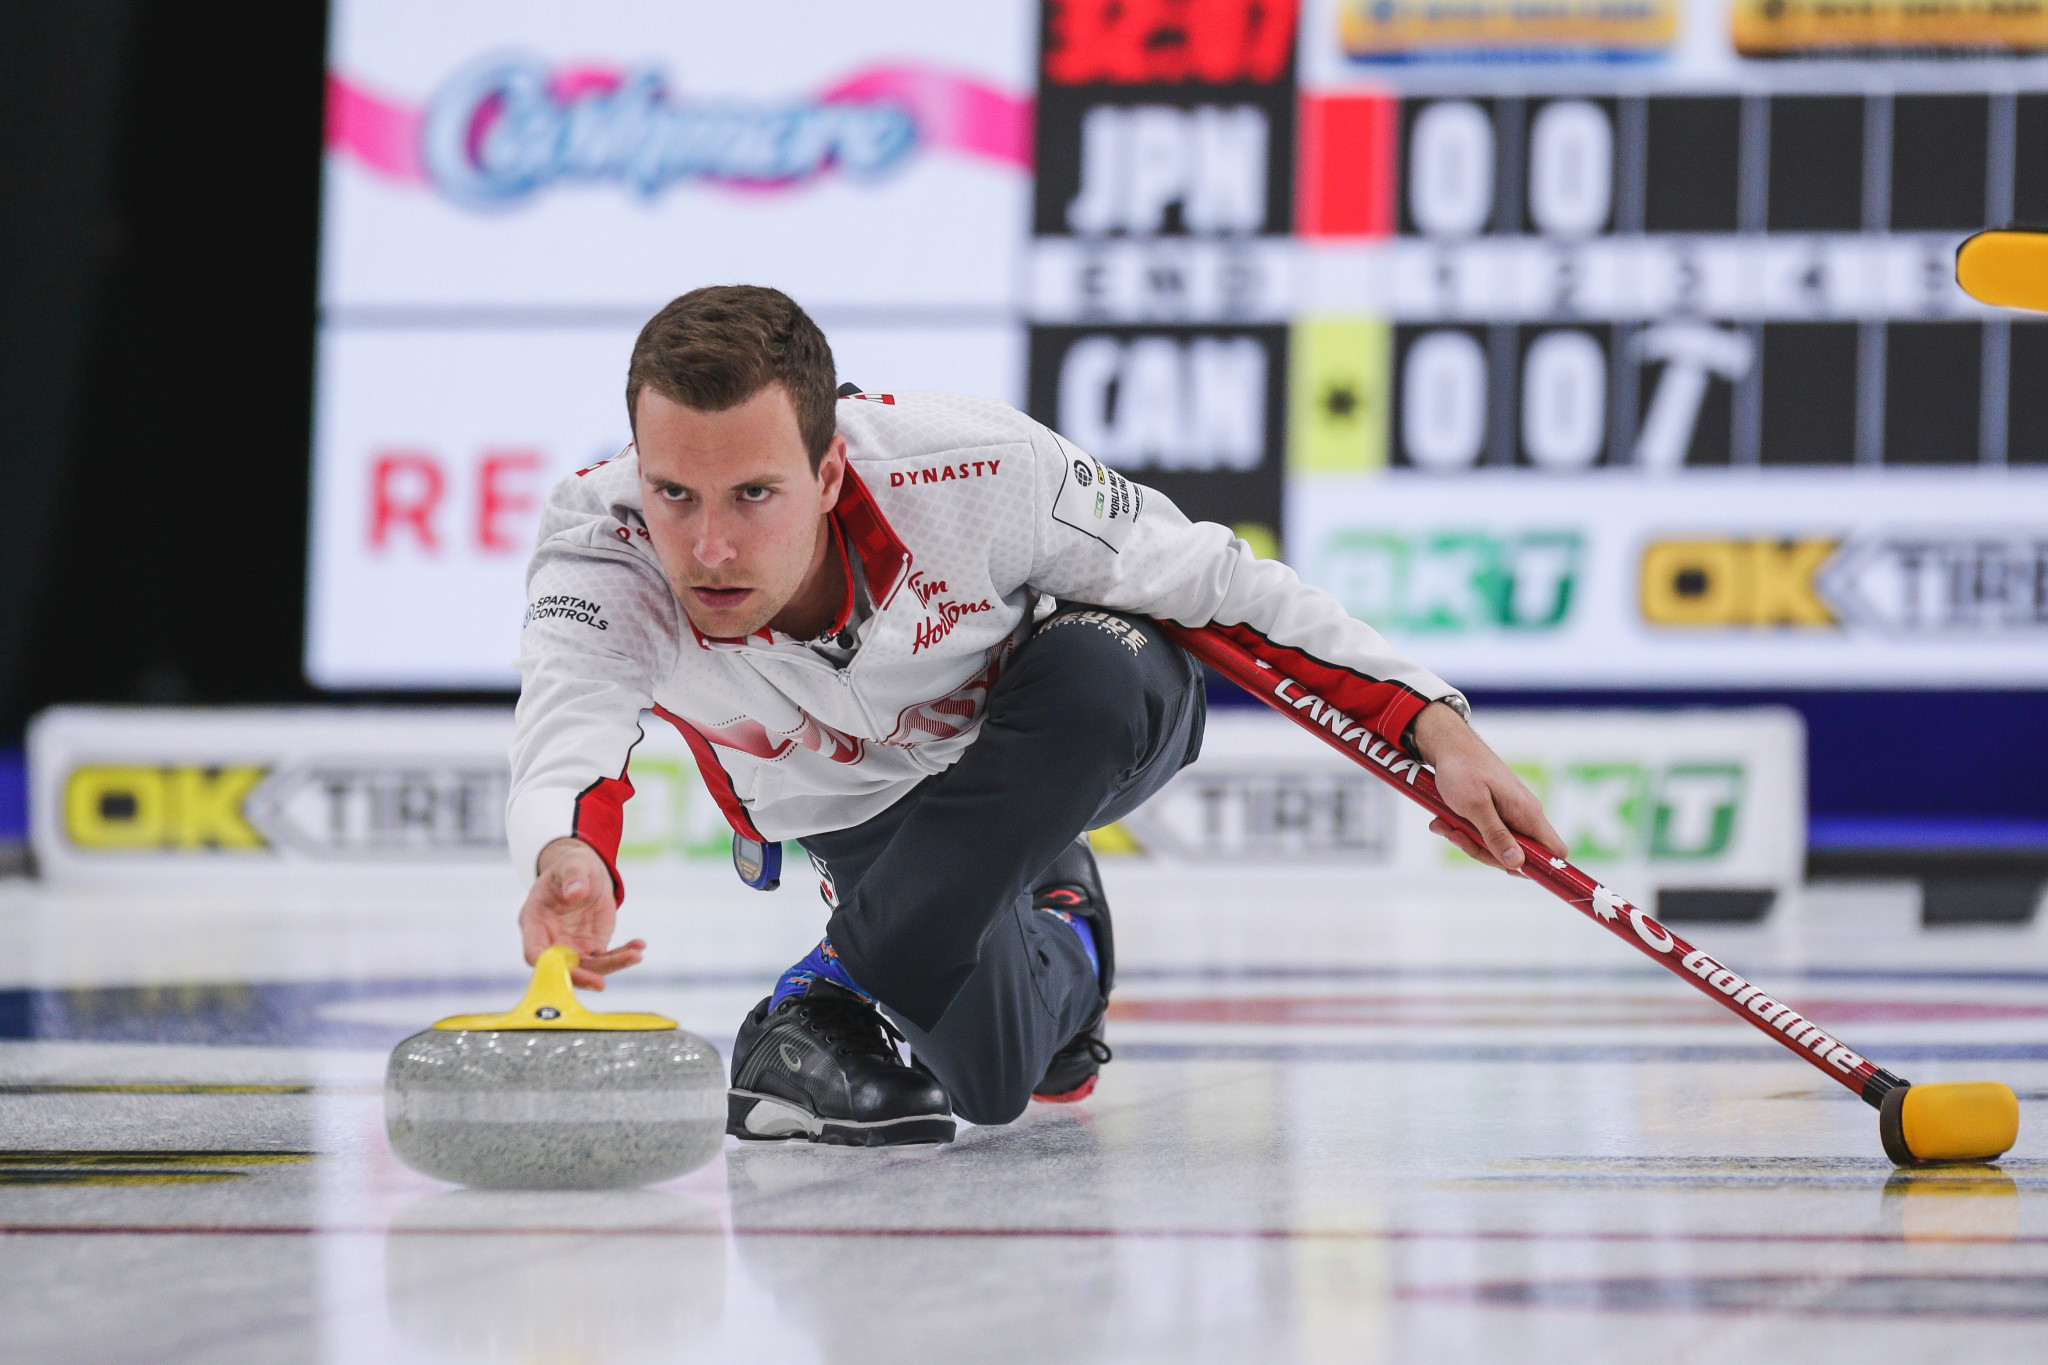 Hosts Canada off to perfect start at World Men's Curling Championship